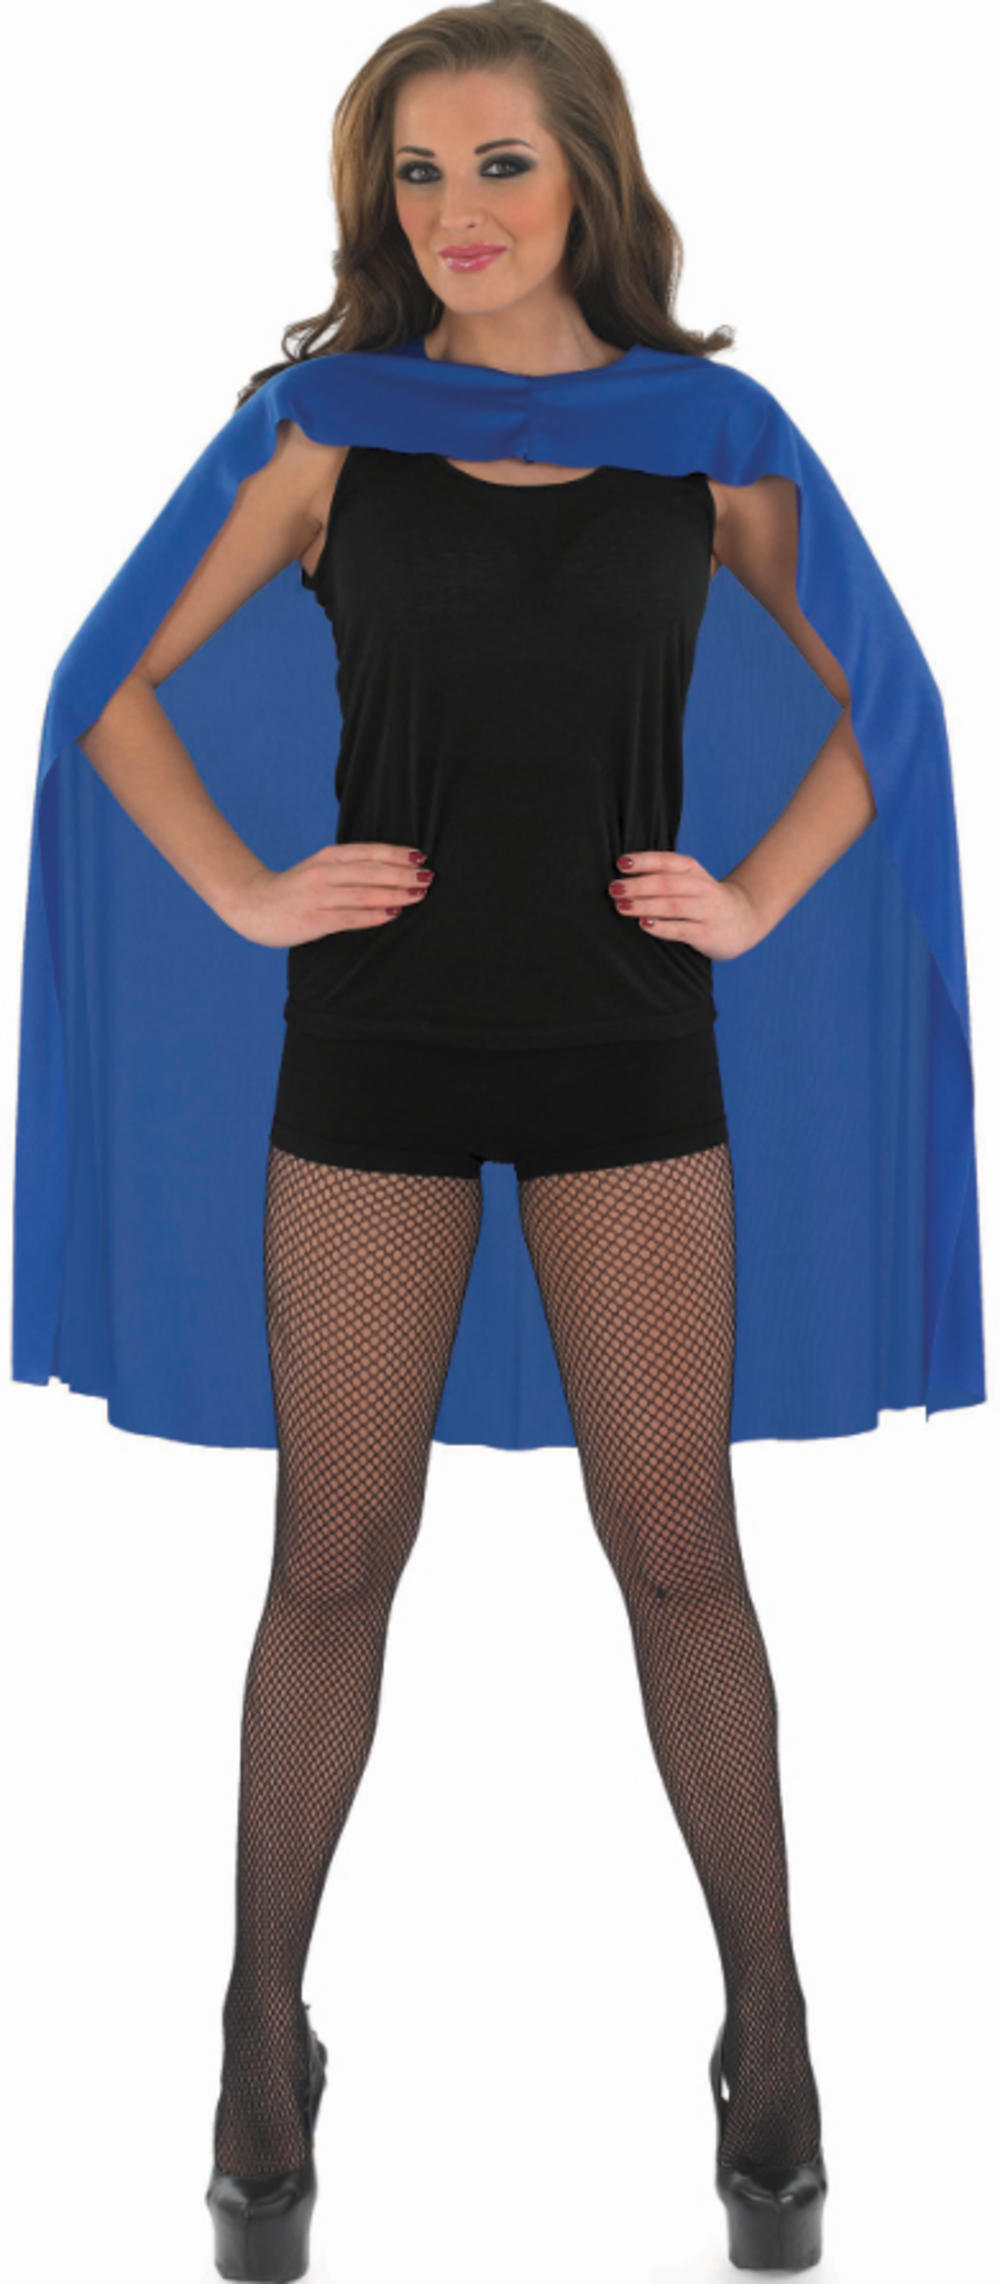 Blue Superhero Cape Costume